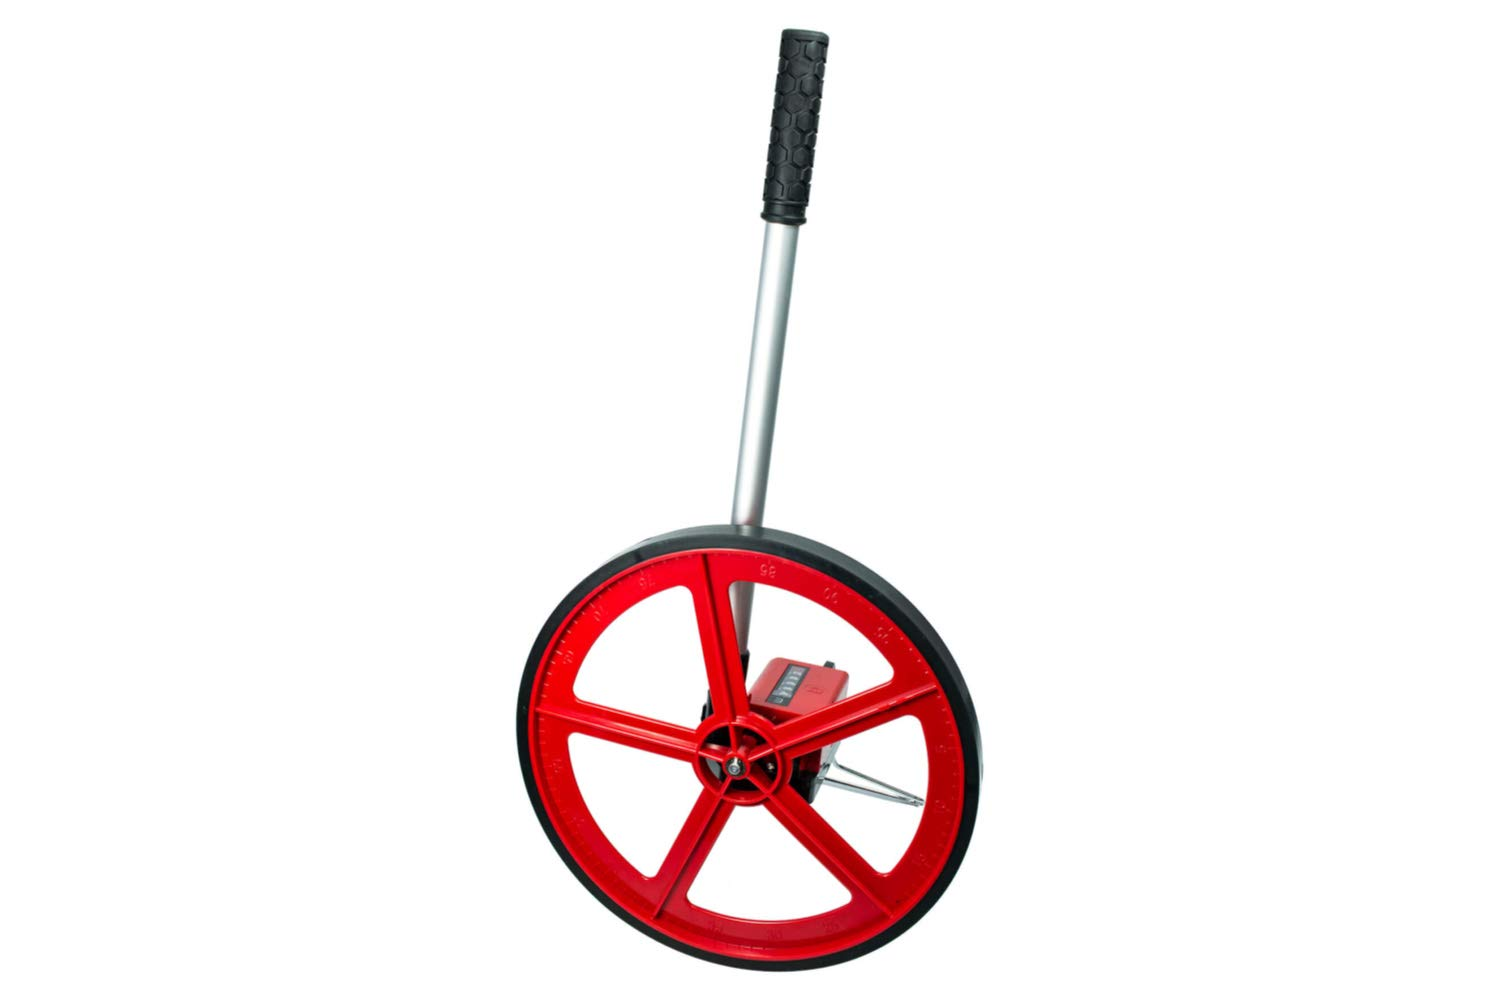 Arbor Scientific Deluxe Trundle Wheel with Metered Counter, Heavy-Duty Construction, Telescoping Handle and Carrying Case by Arbor Scientific